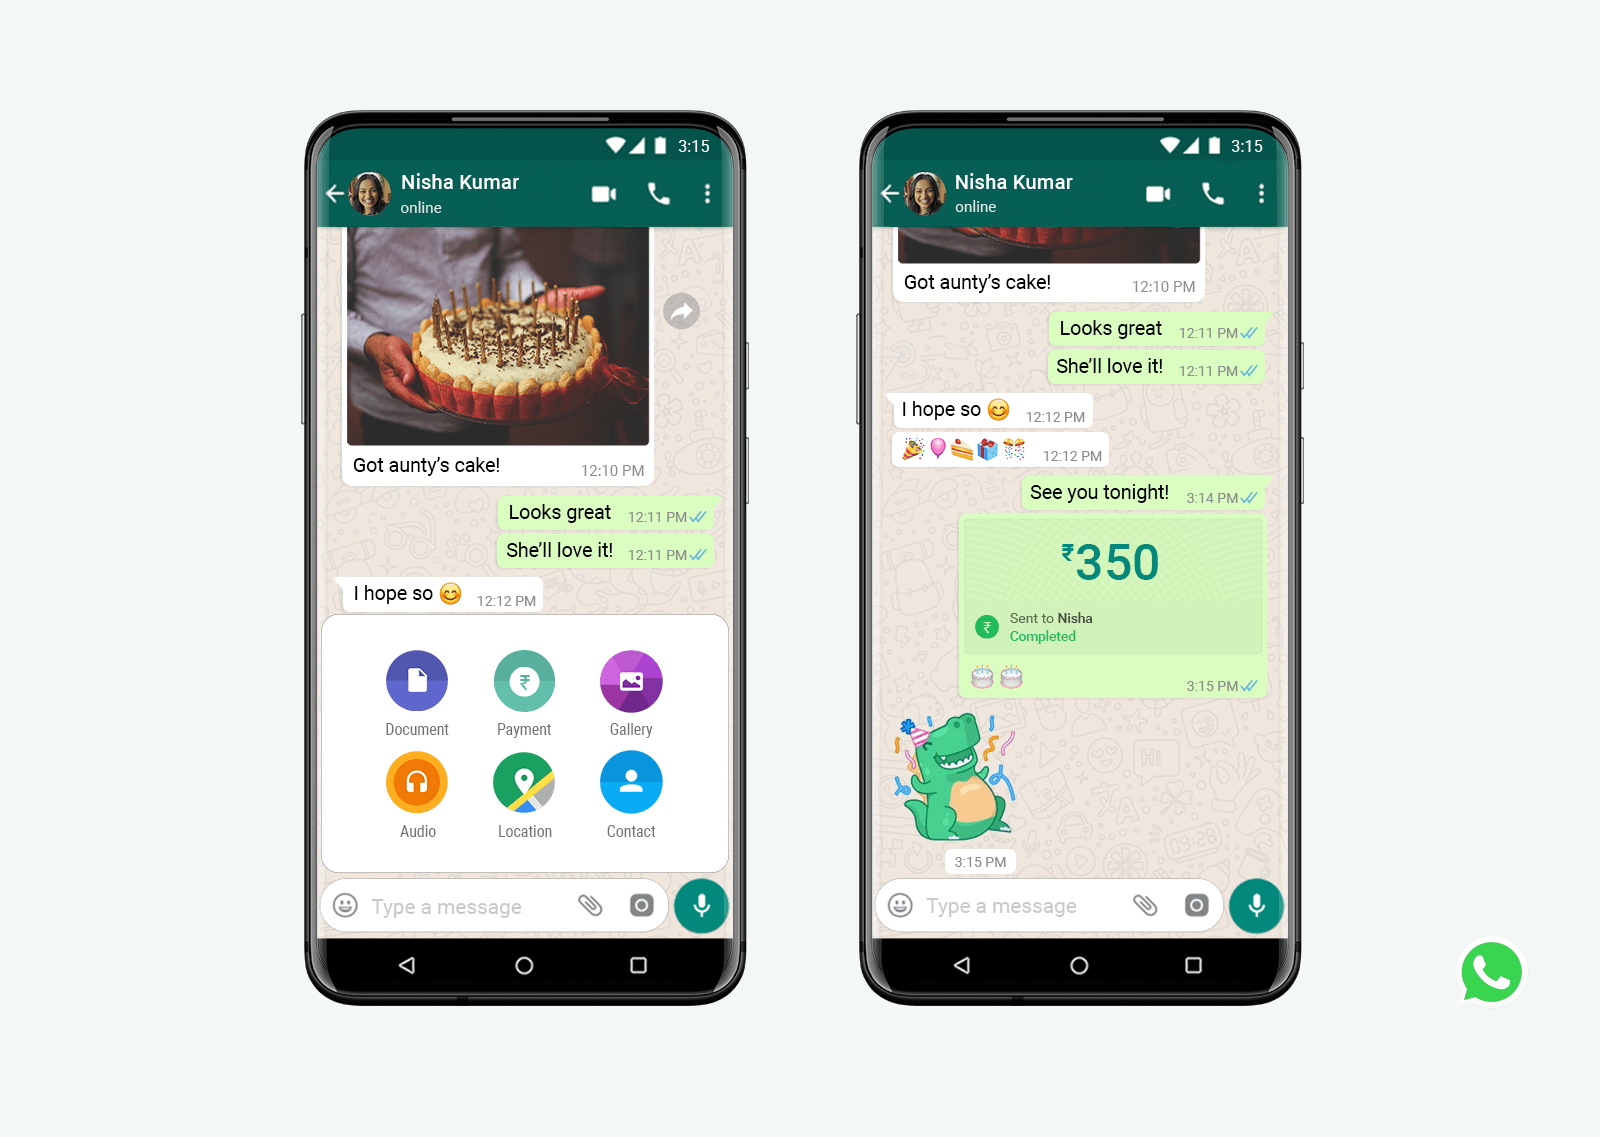 WhatsApp Payment Method Now Available to All Users in India